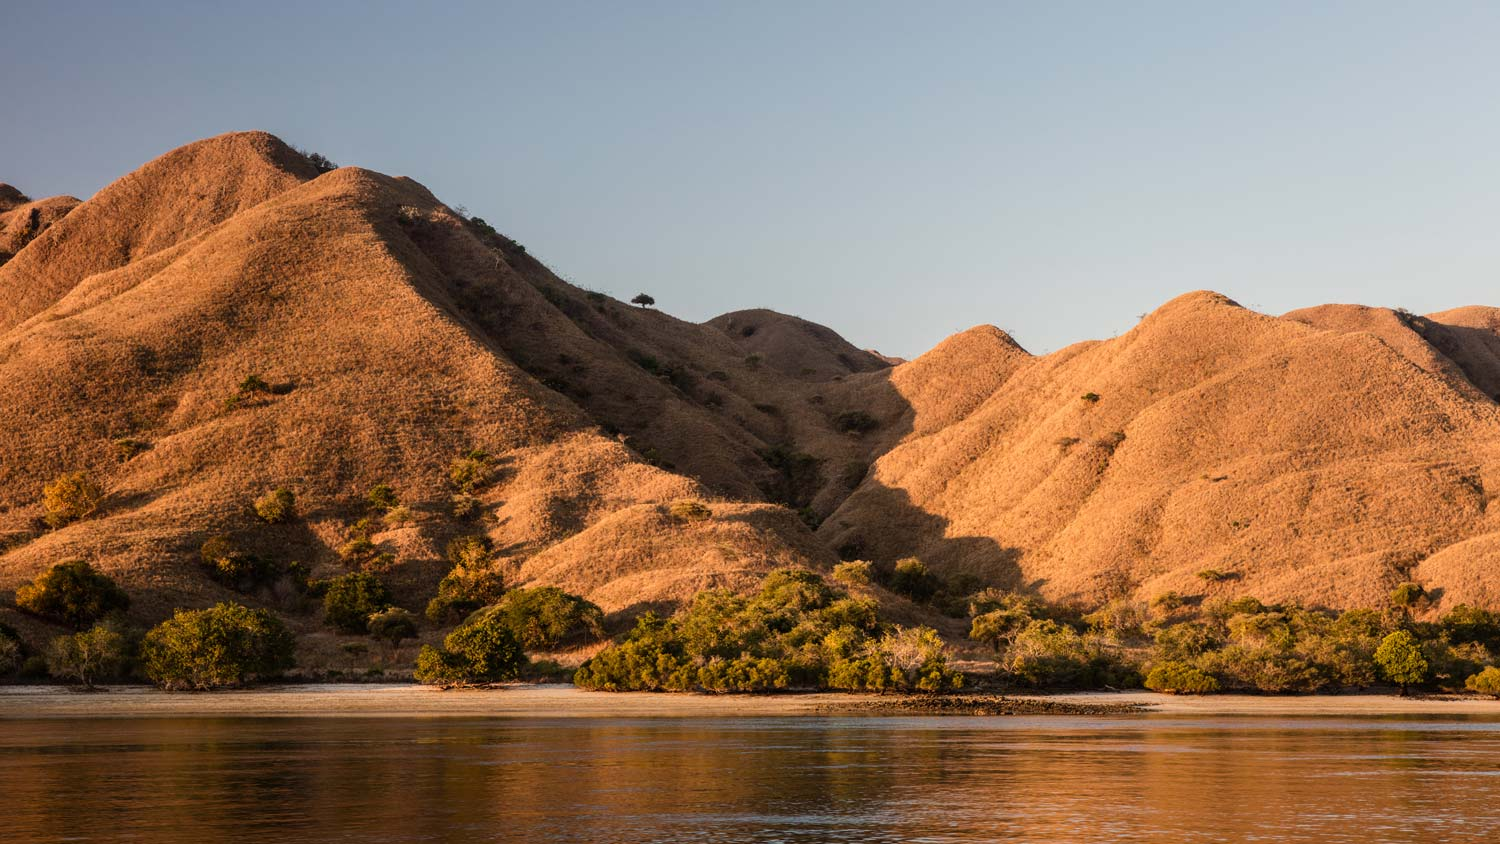 Hills-on-the-Komodo-Natioanal-park.jpg